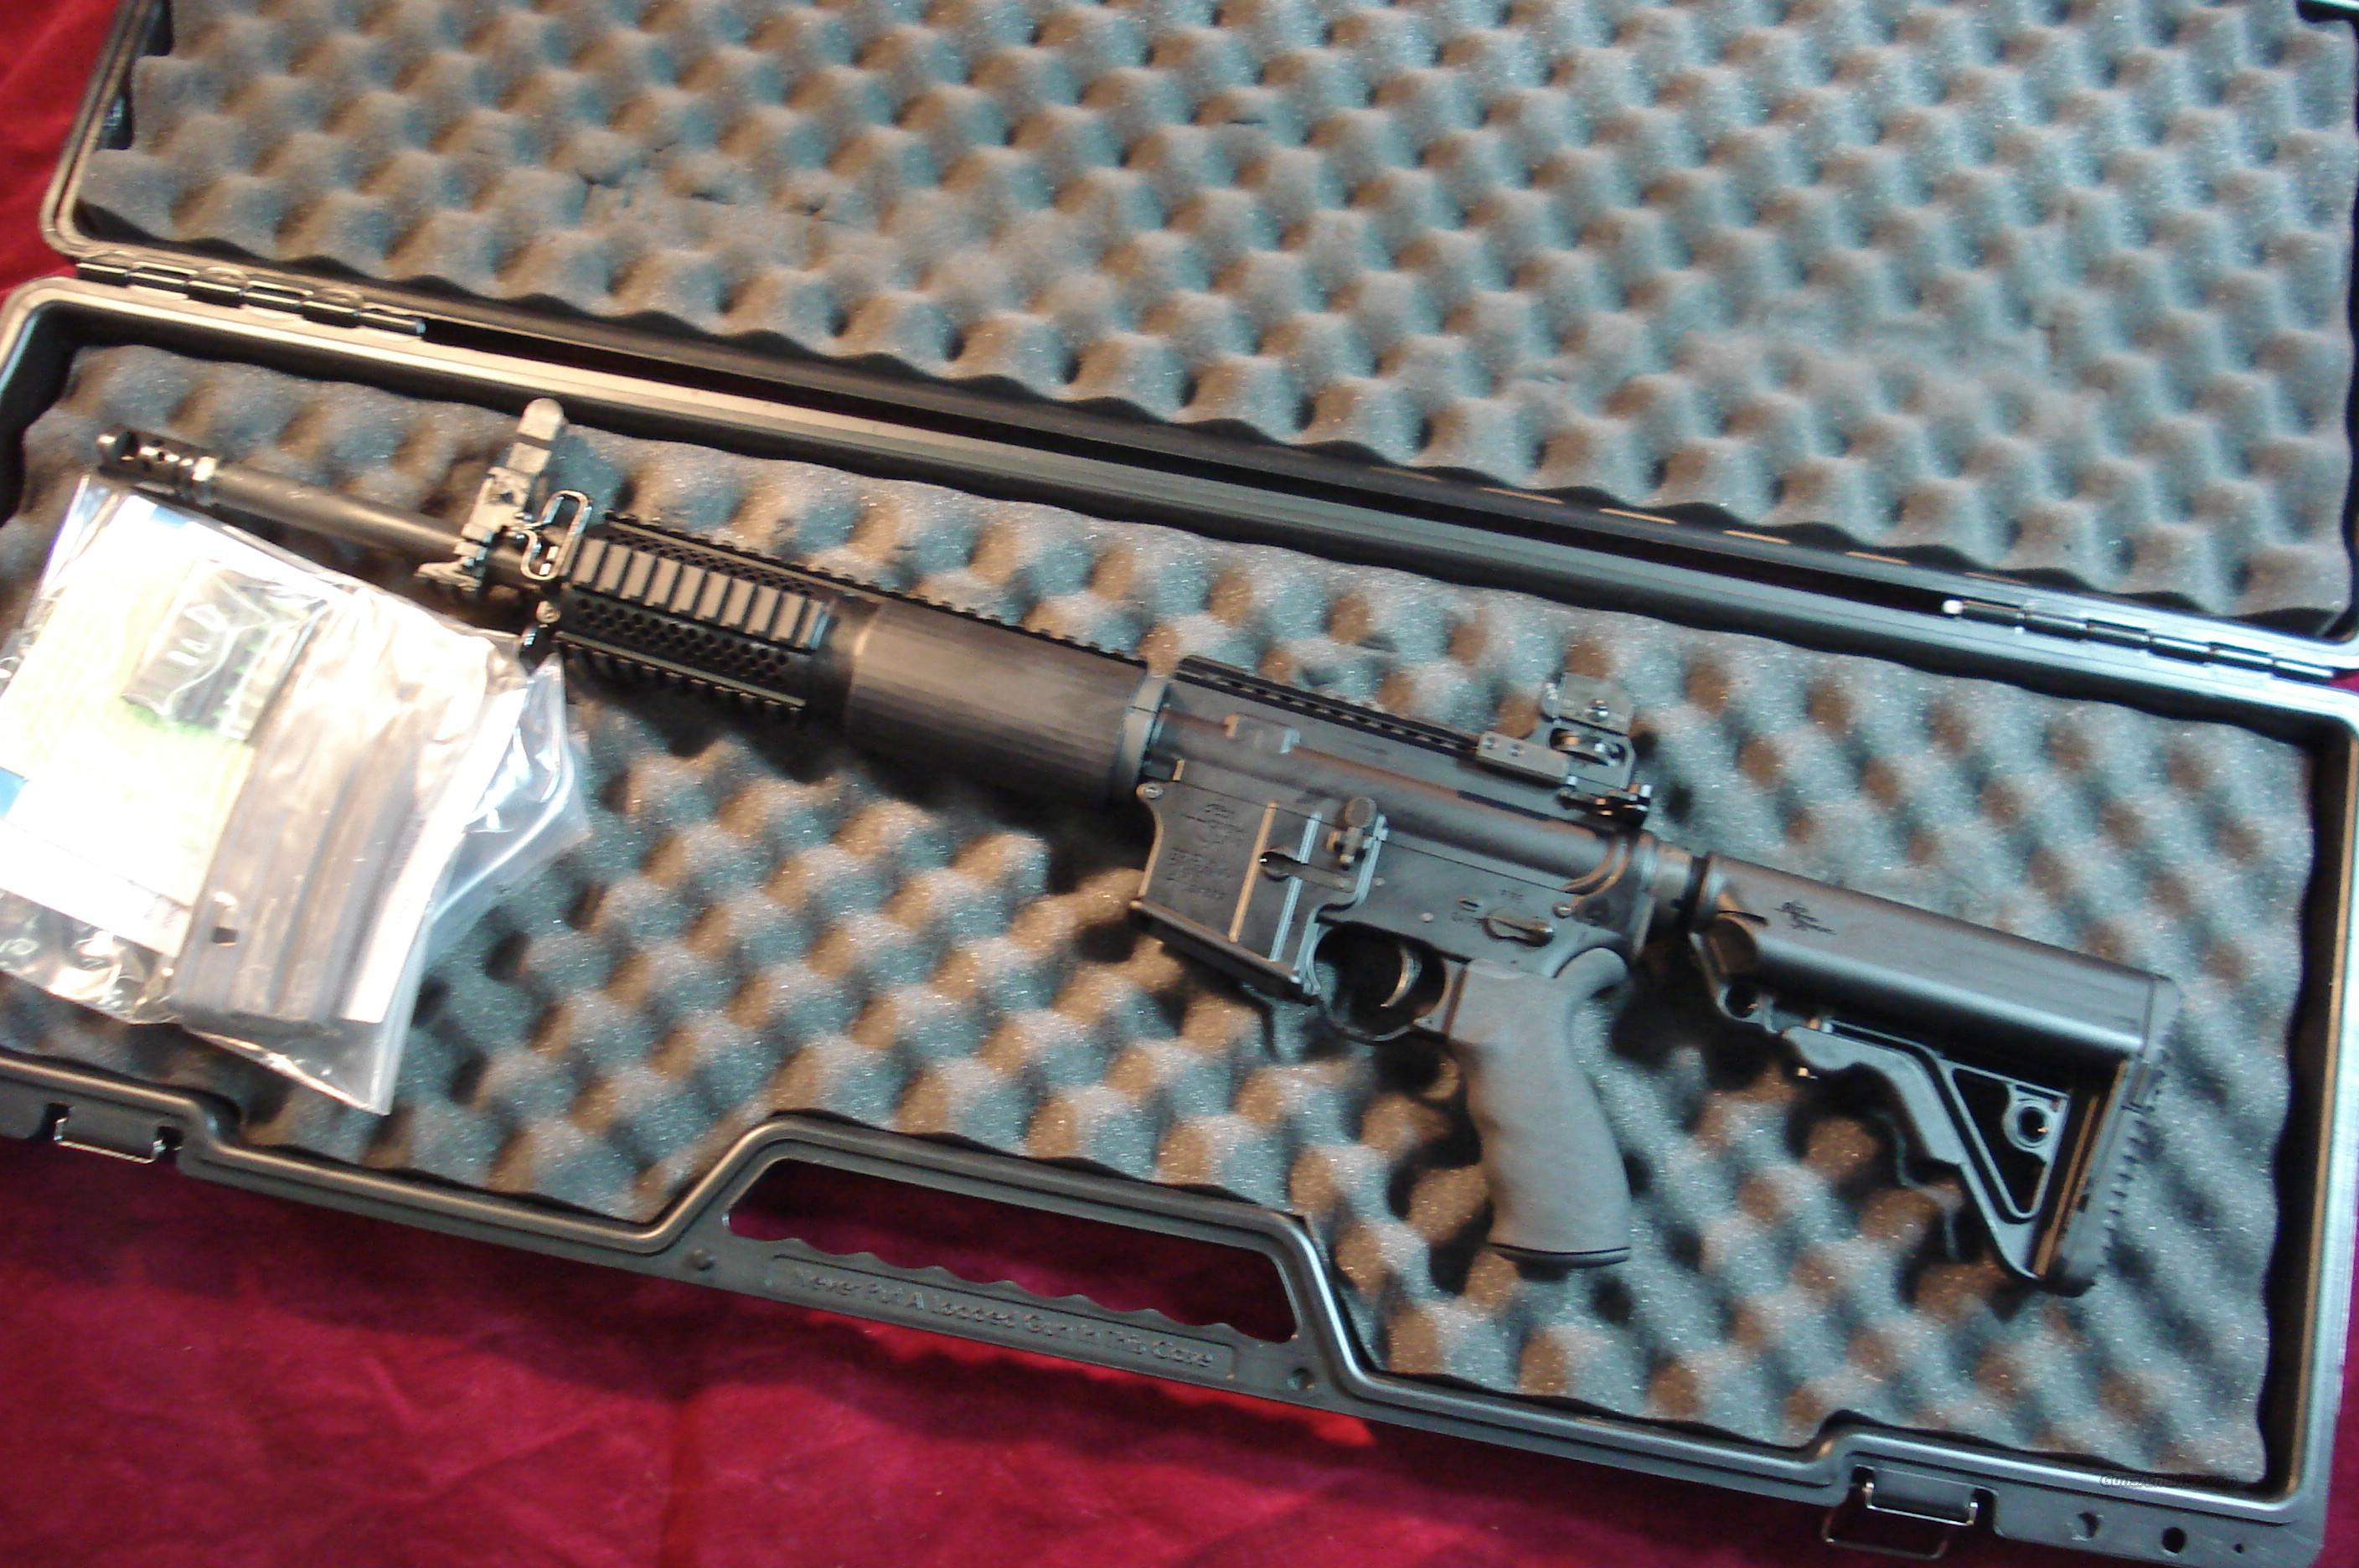 ROCK RIVER ARMS LAR-15 ELITE OPERATOR 2 5.56/223 CAL. W/ DOMINATOR 2 MOUNT NEW  Guns > Rifles > Rock River Arms Rifles